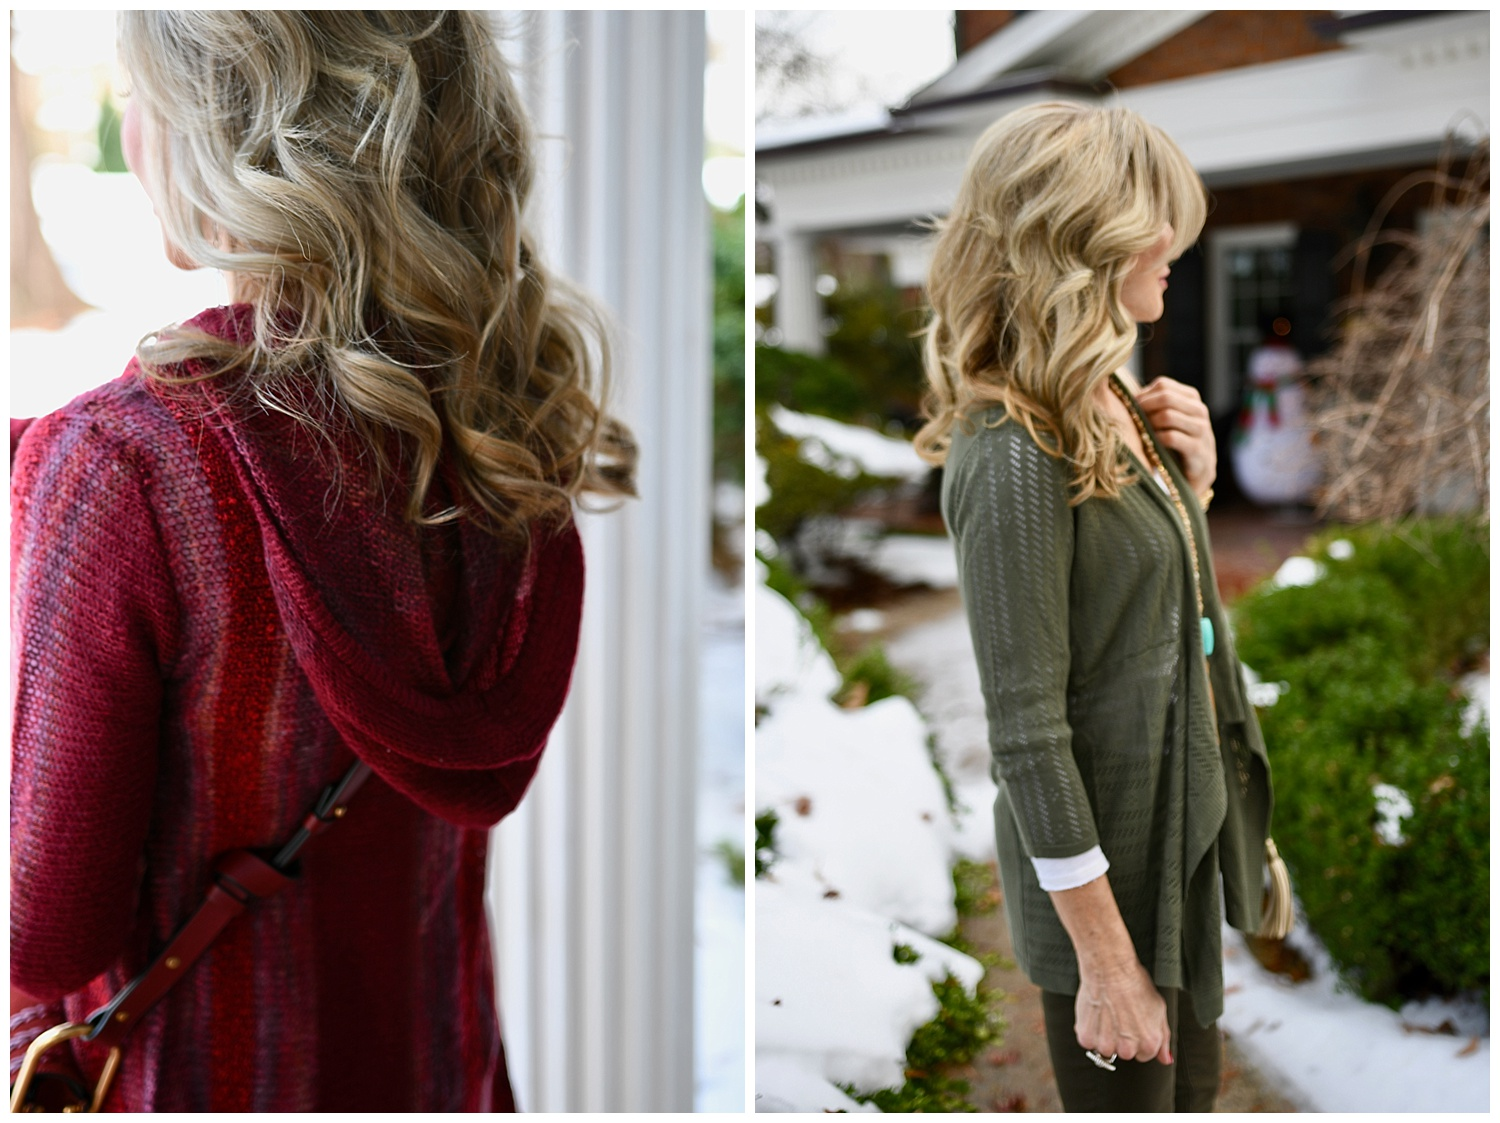 Dressbarn Sweater Styled for Winter